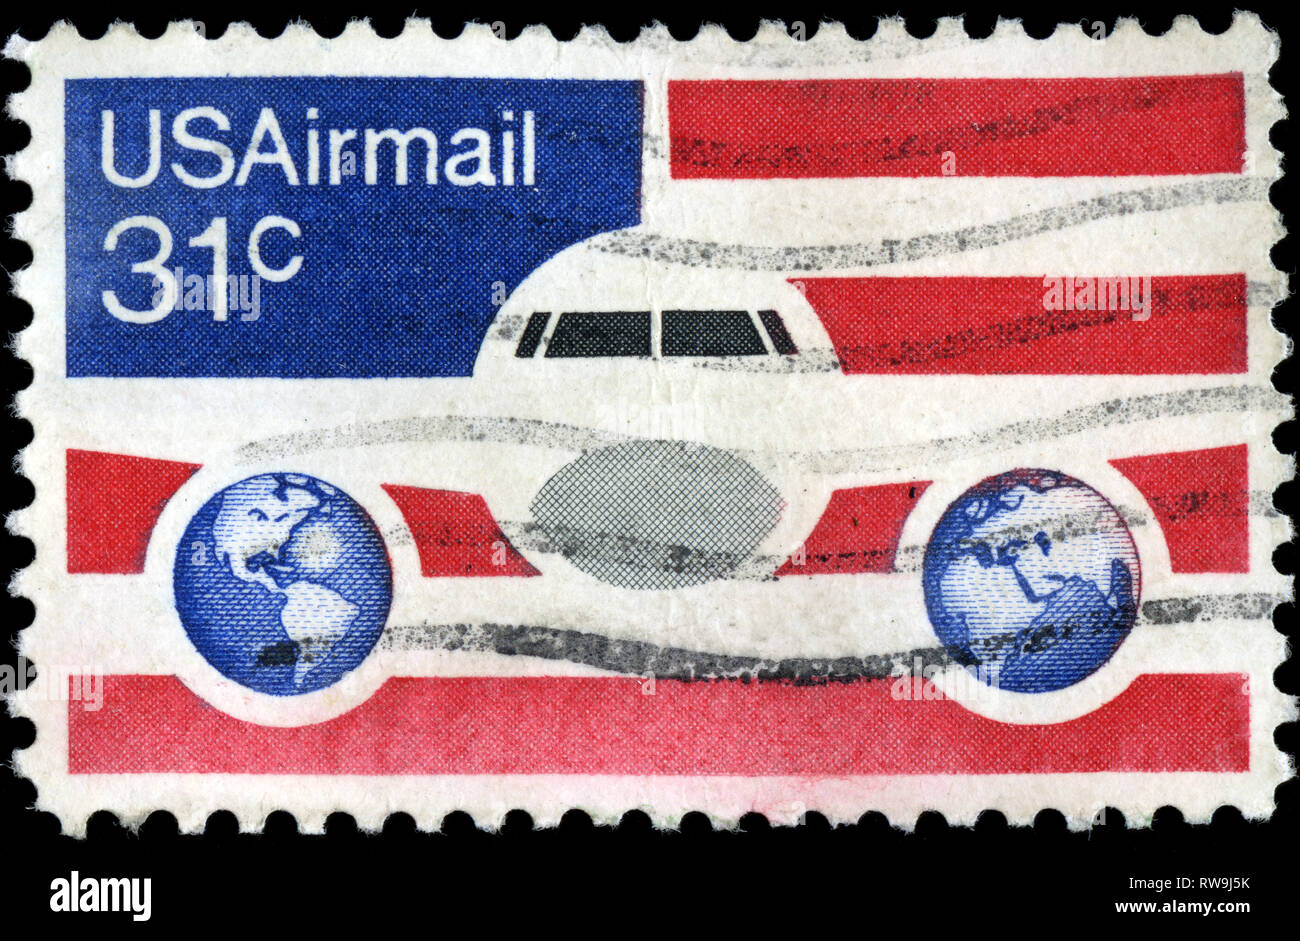 Postage stamp from United States of America (USA) in the Airmail 1974-1976 series issued in 1976 - Stock Image